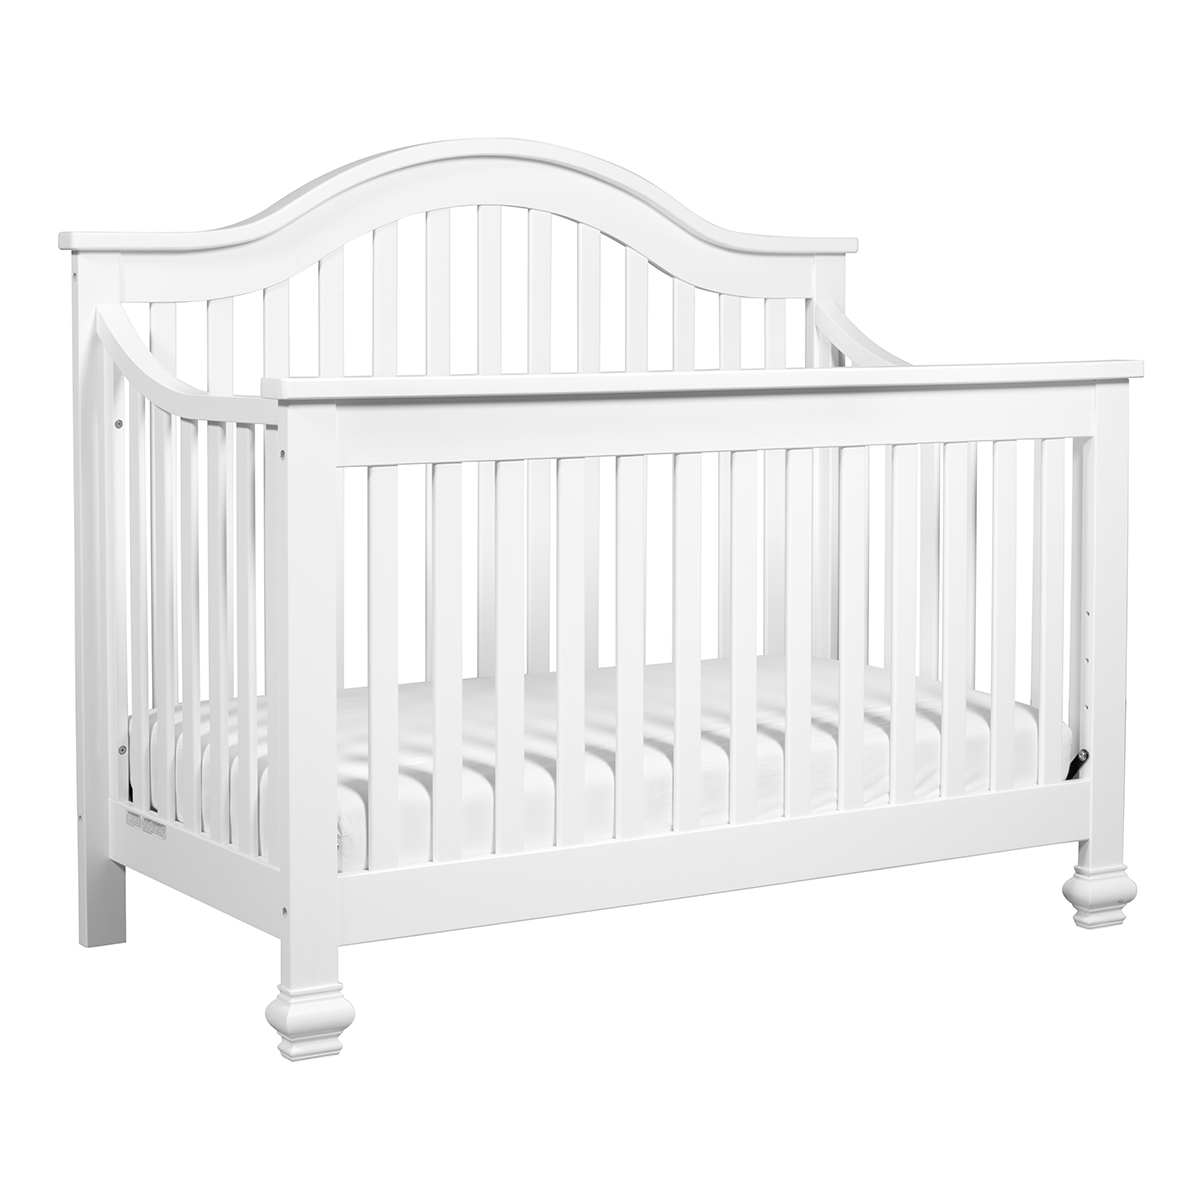 Davinci Clover 4 In 1 Convertible Crib With Toddler Bed Conversion Kit In White Free Shipping